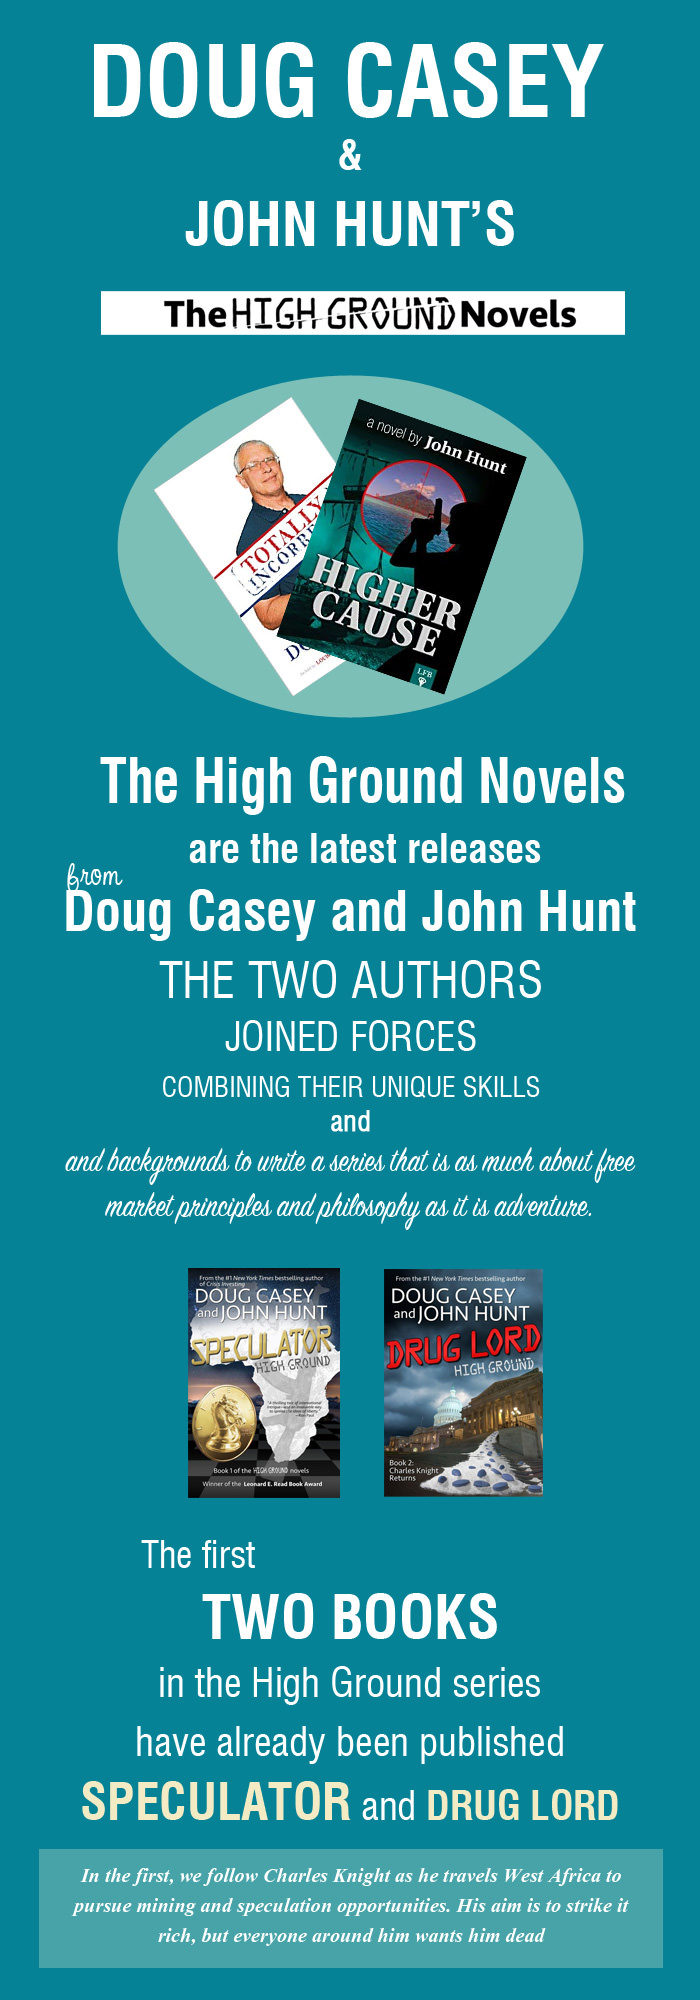 The High Ground Series – The Latest Series of Novels by Doug Casey and John Hunt